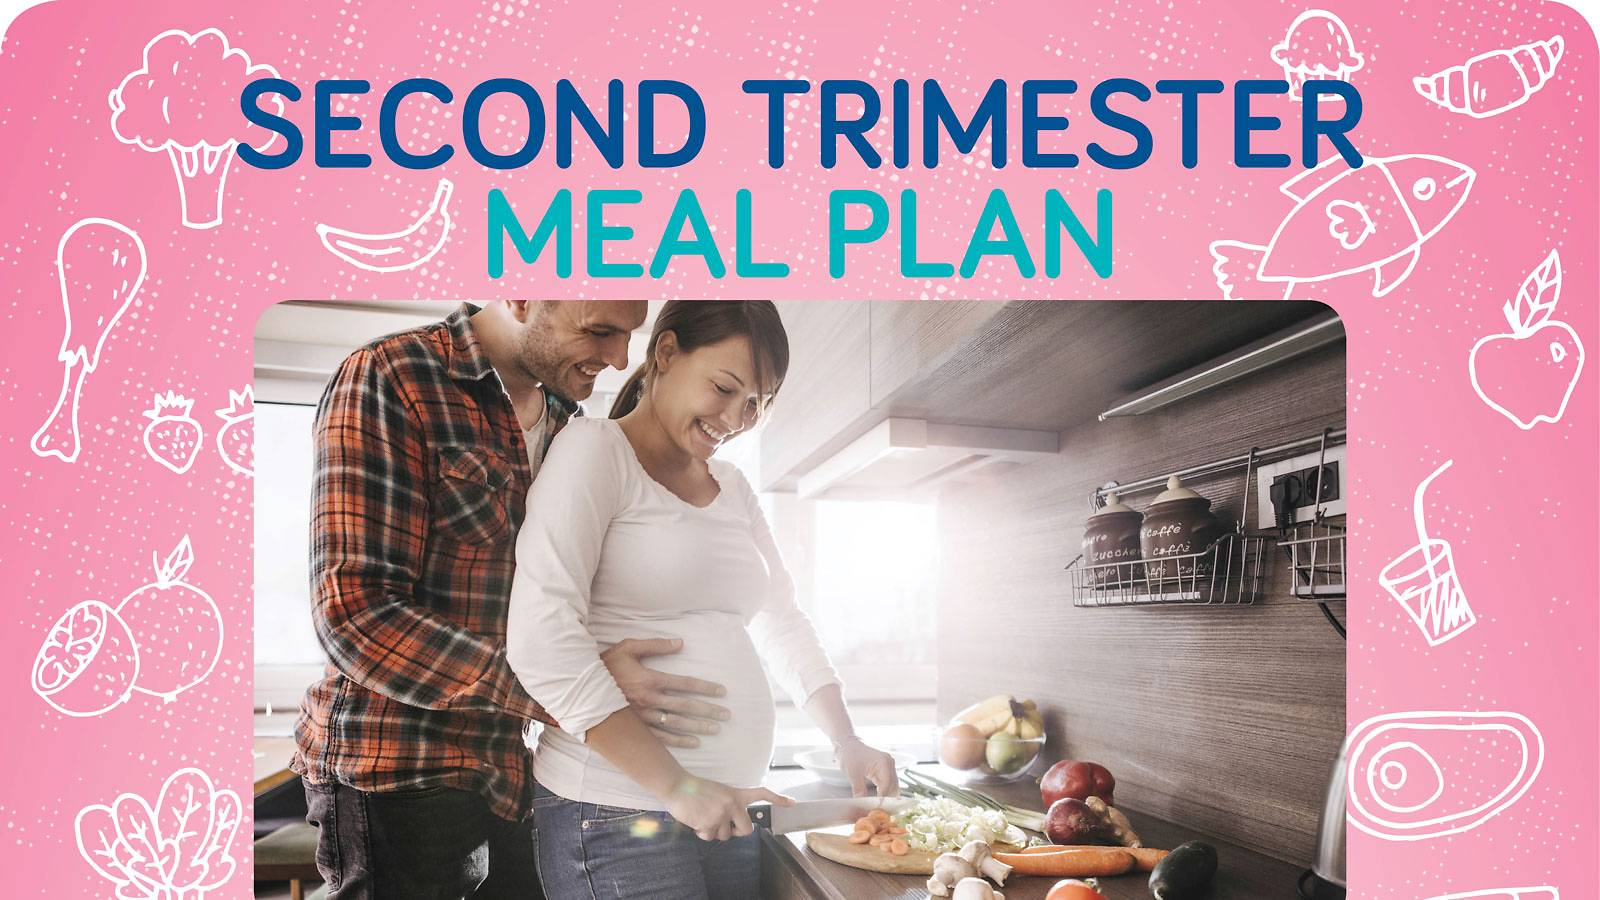 Pregnancy-diet-meal-plan-Second-trimester-1